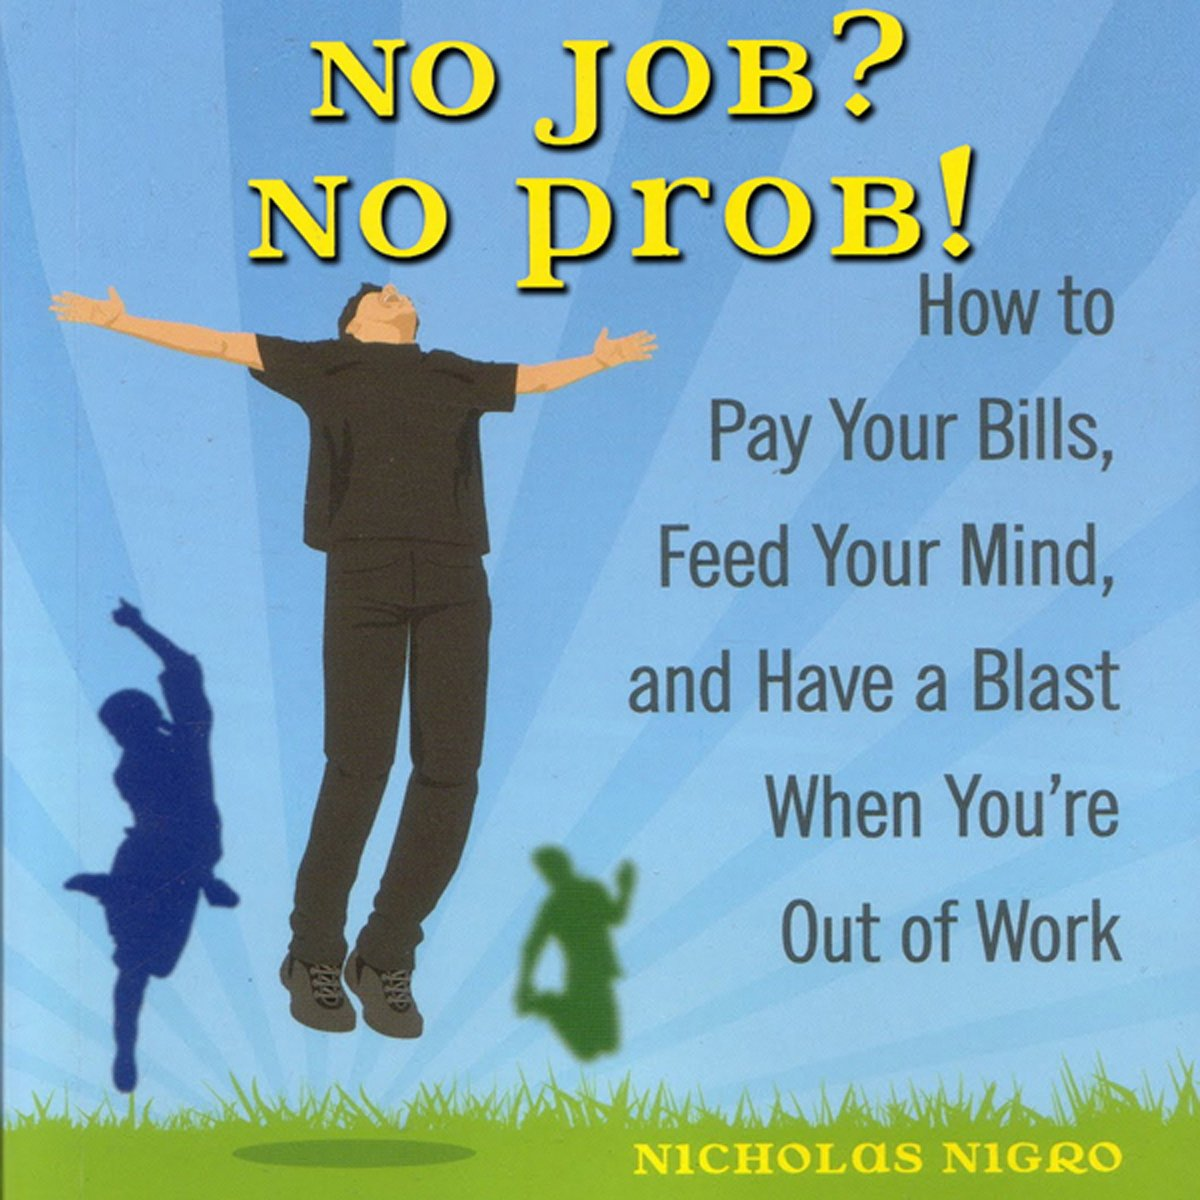 No Job? No Prob!: How to Pay Your Bills, Feed Your Mind, and Have a Blast When You're Out of Work